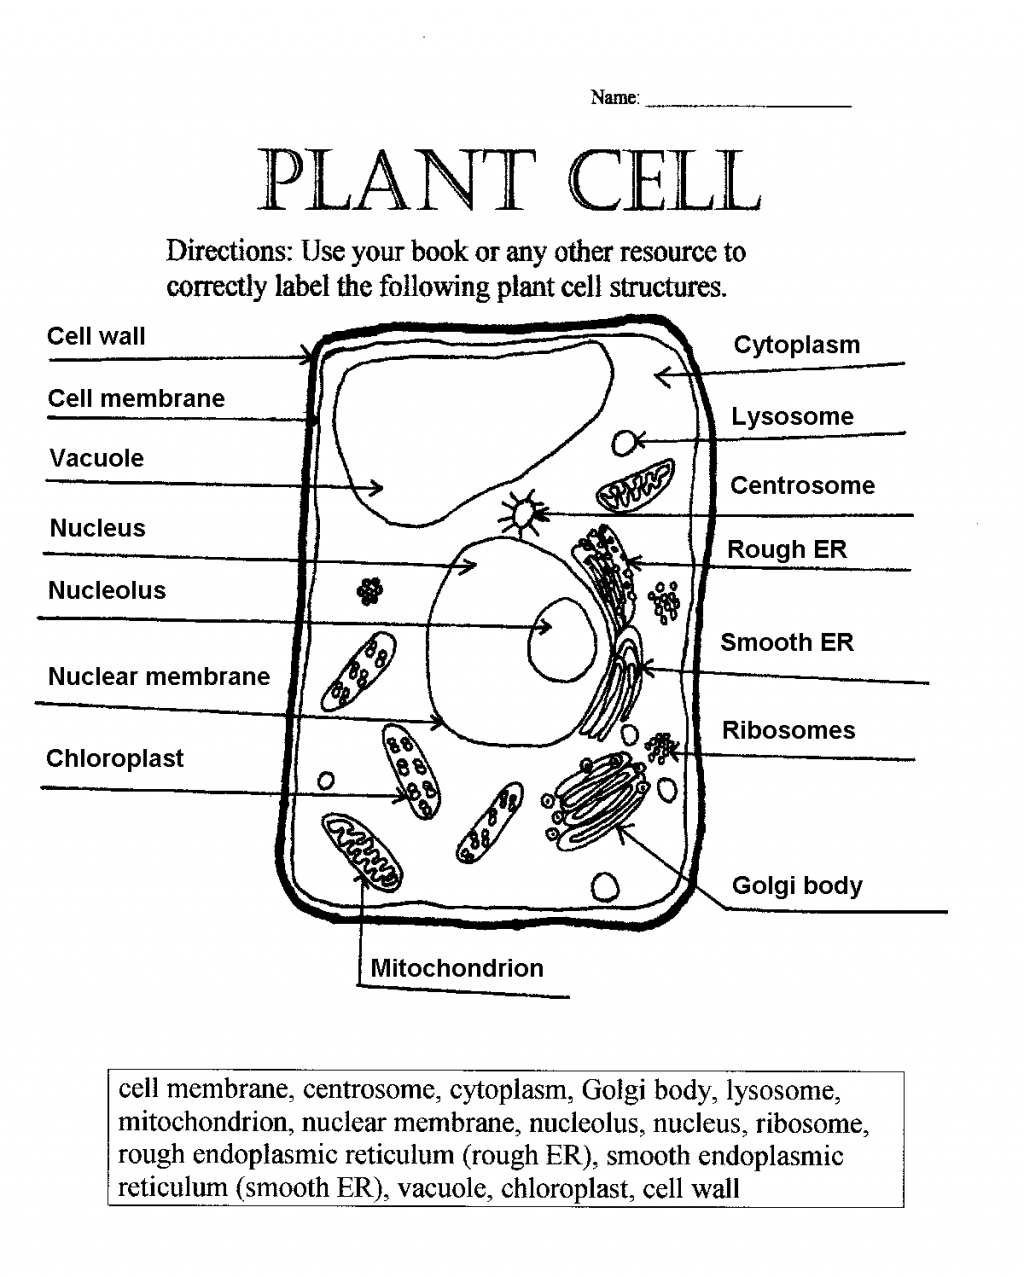 Plant Cells Worksheet - Khayav